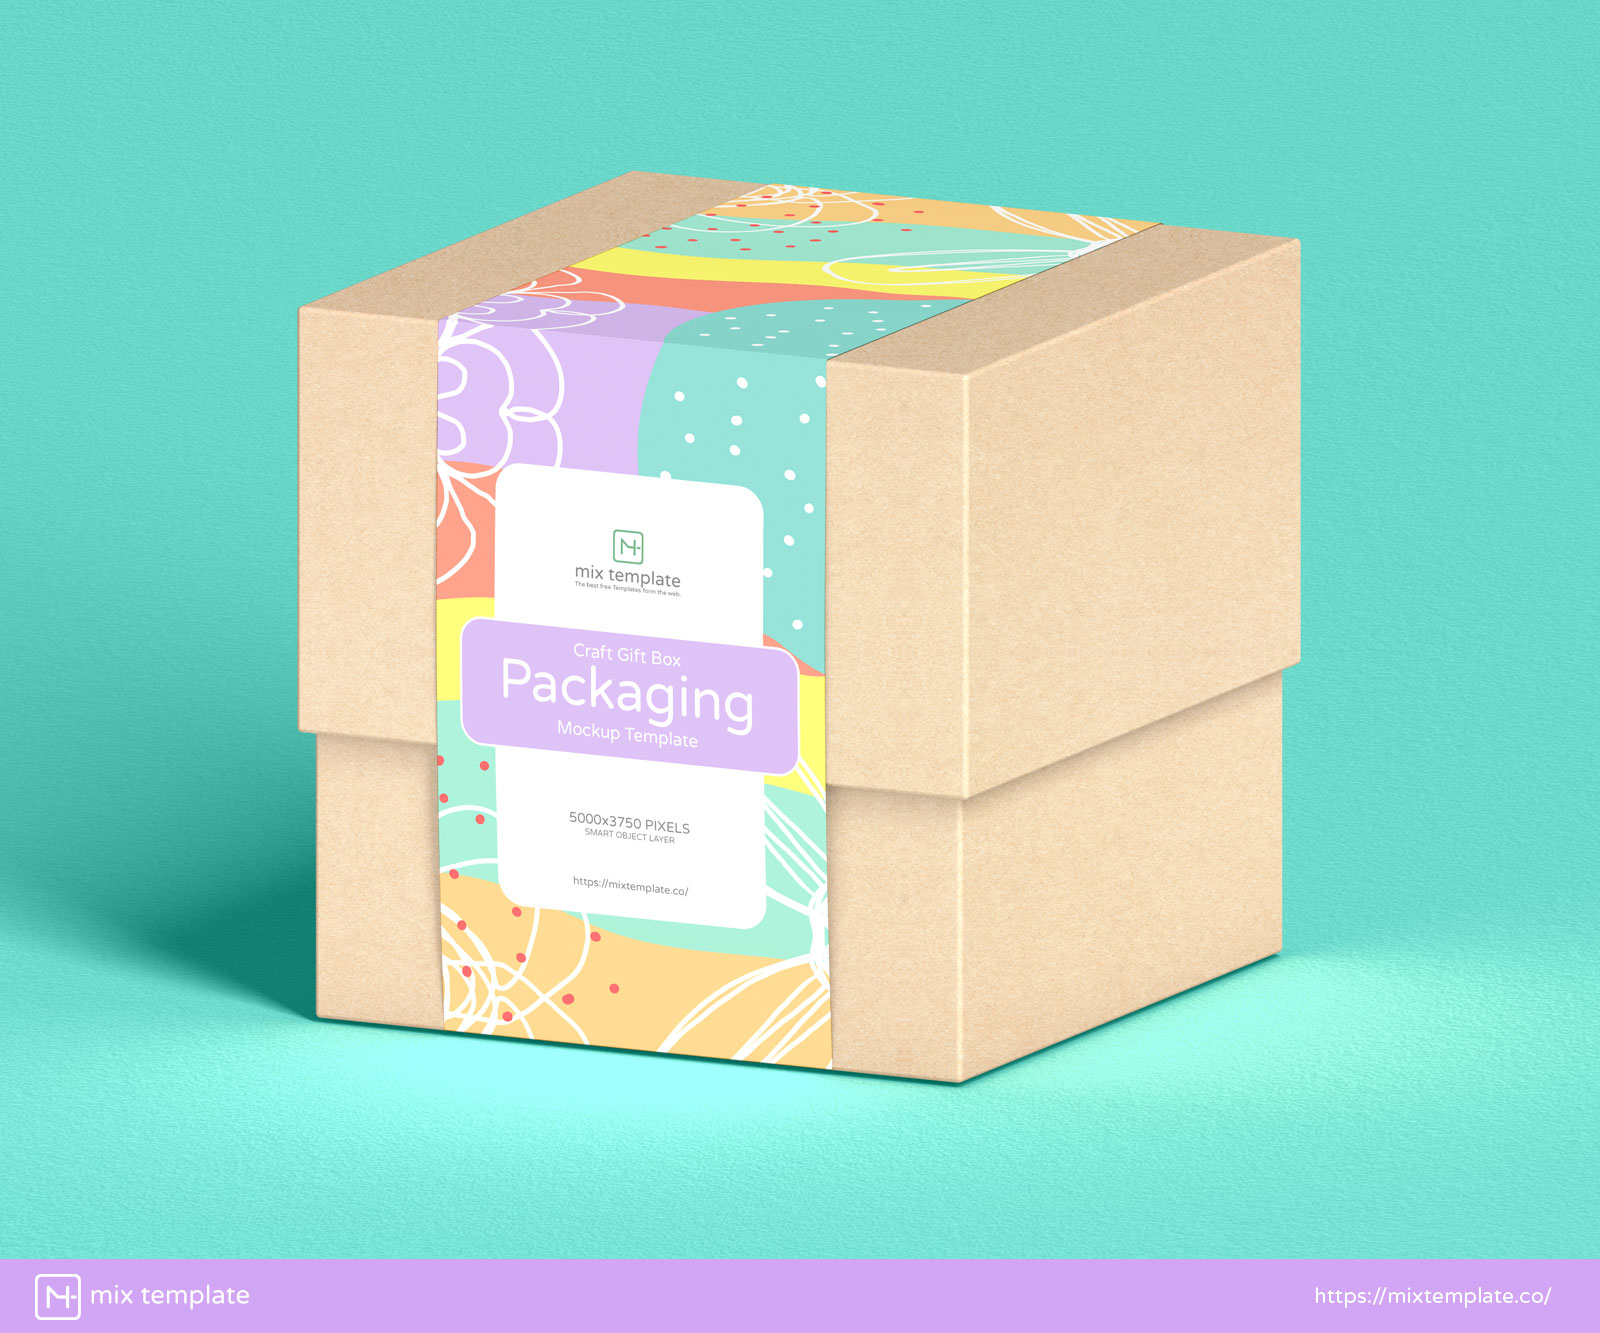 Free-Craft-Gift-Box-Packaging-Mockup-Template